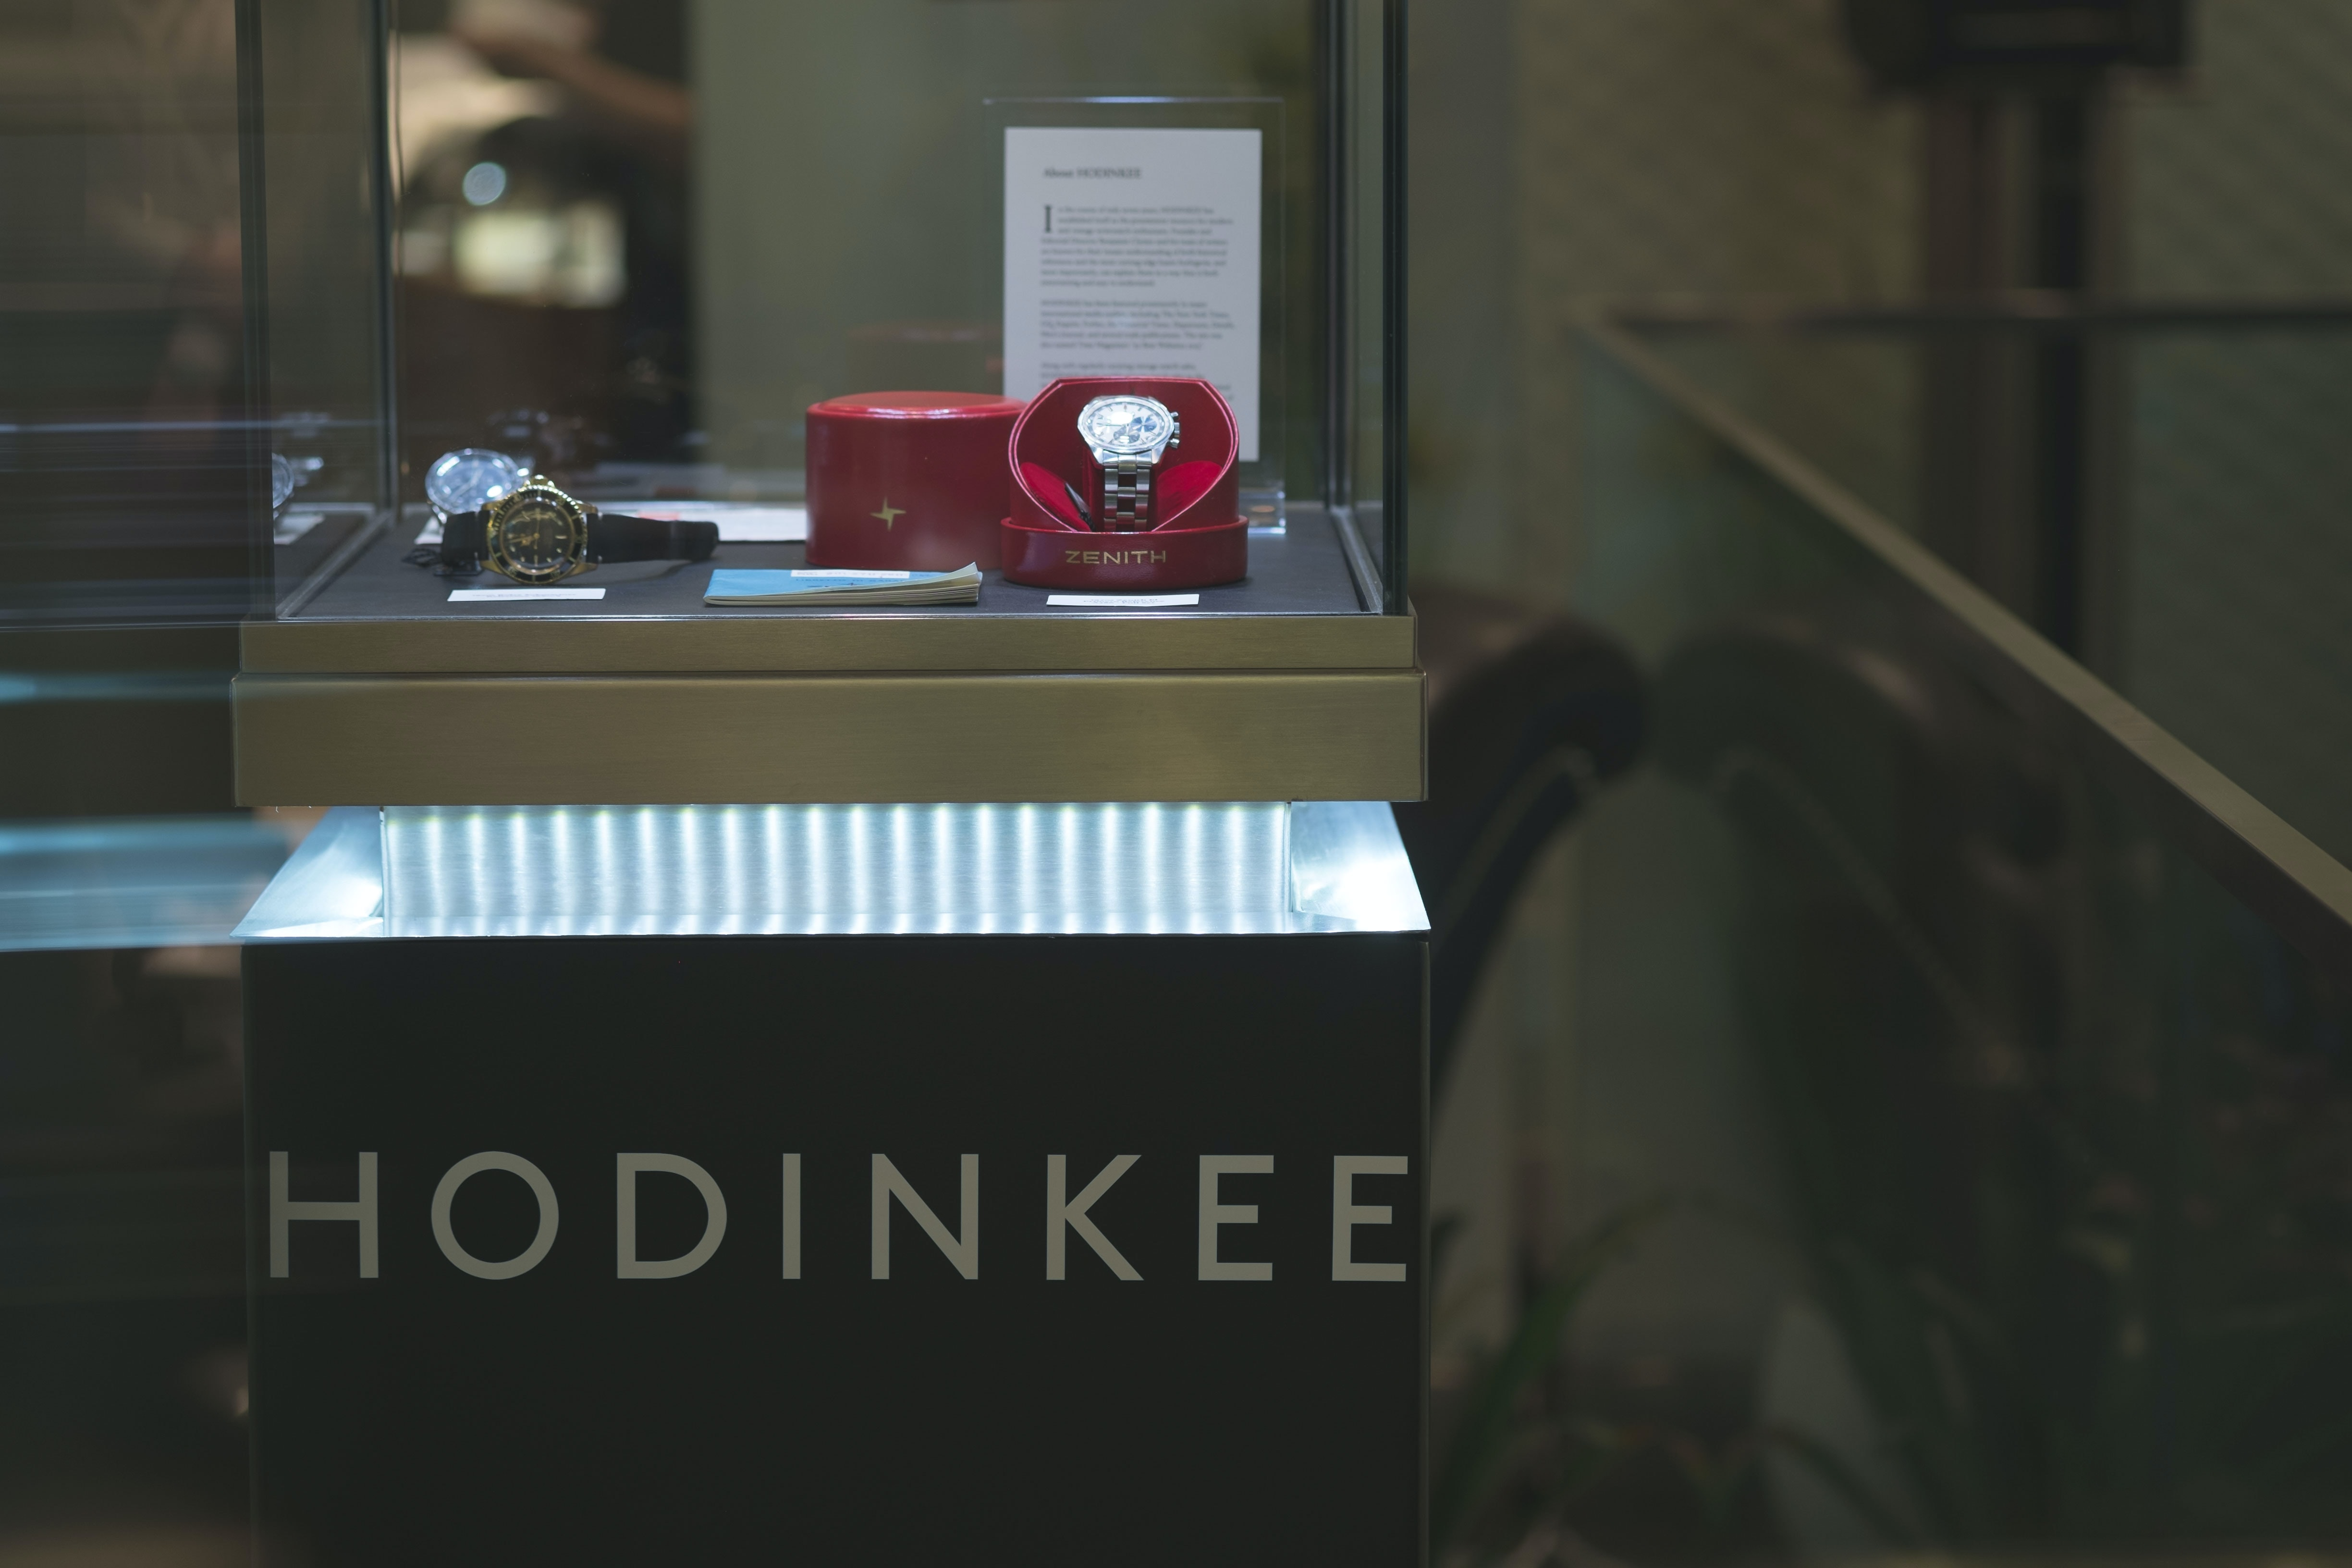 Tomorrow, Sunday June 12th, Is Your Last Day To Visit HODINKEE At Harrods In London For Some Insane Vintage Watches And Accessories Tomorrow, Sunday June 12th, Is Your Last Day To Visit HODINKEE At Harrods In London For Some Insane Vintage Watches And Accessories  DSF1247